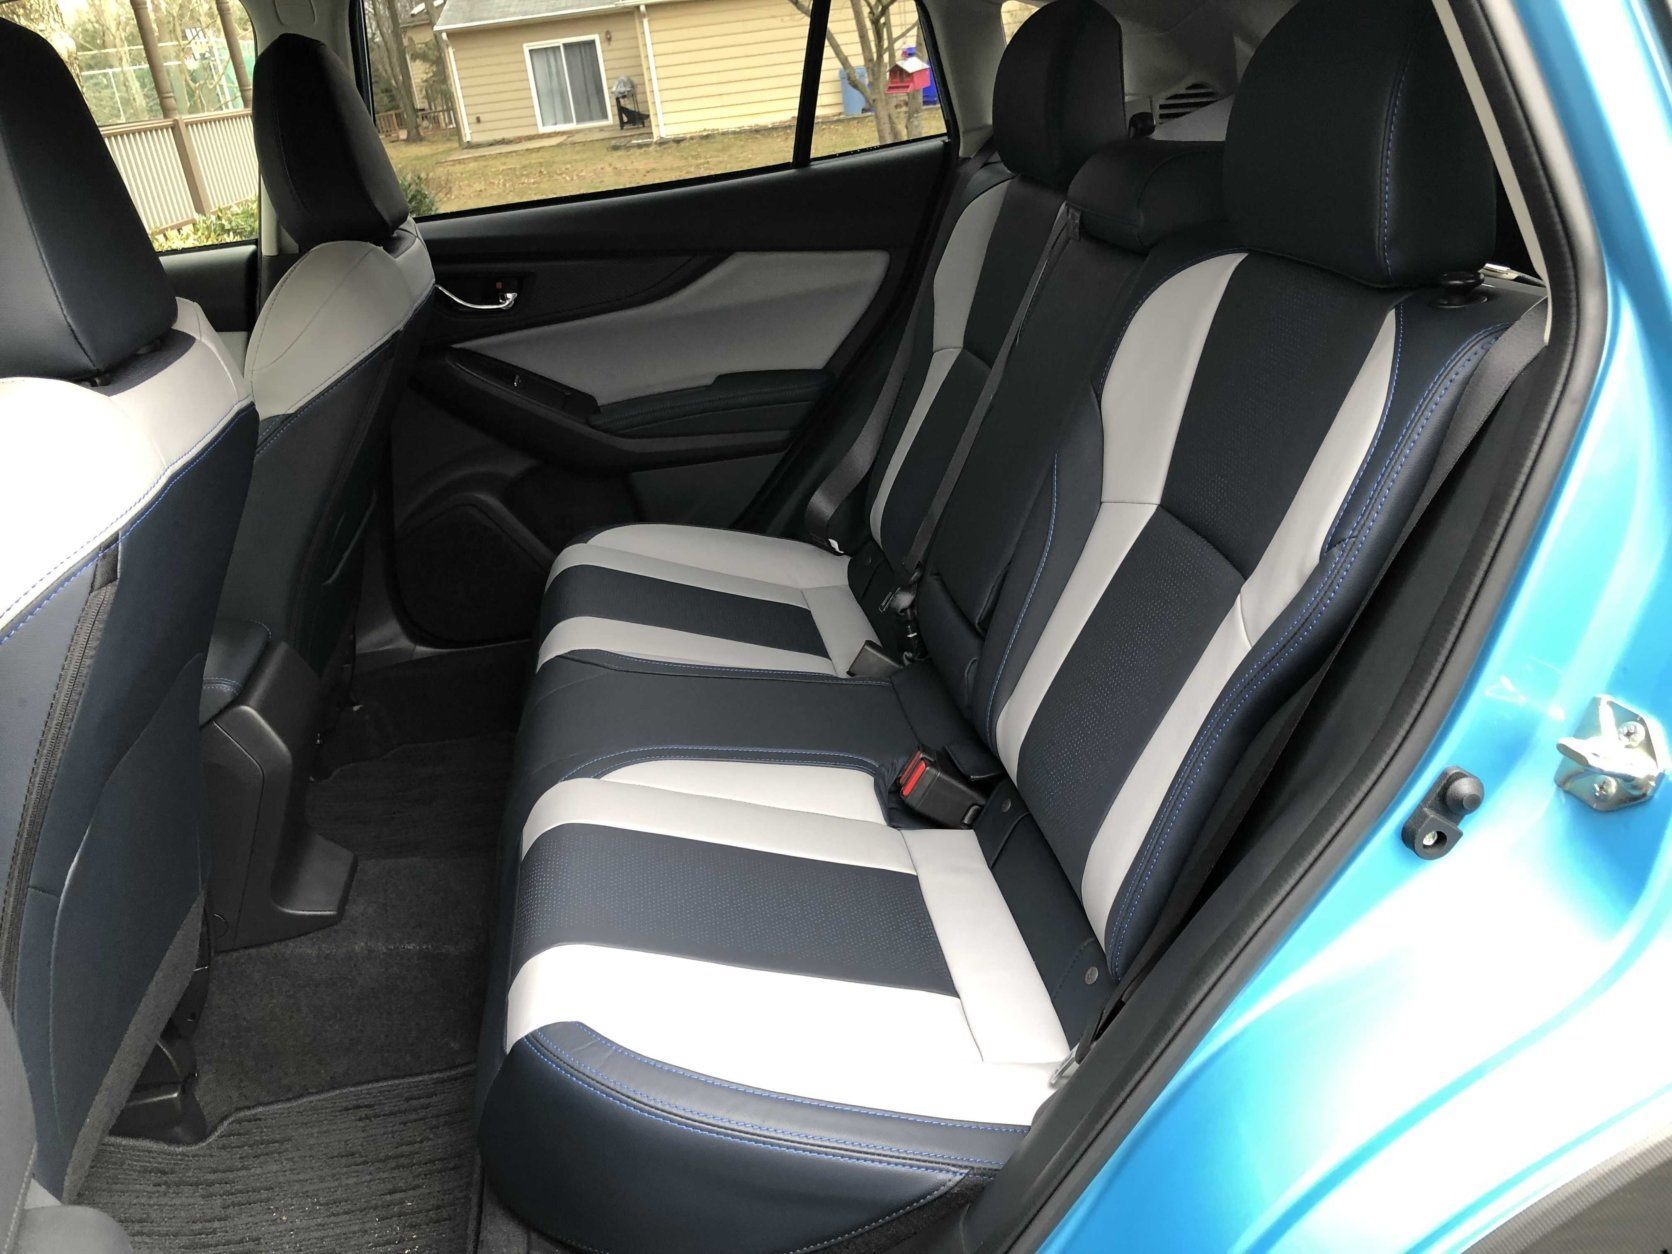 Stupendous Car Review Subaru Crosstrek Now Offers Plug In Hybrid Dailytribune Chair Design For Home Dailytribuneorg